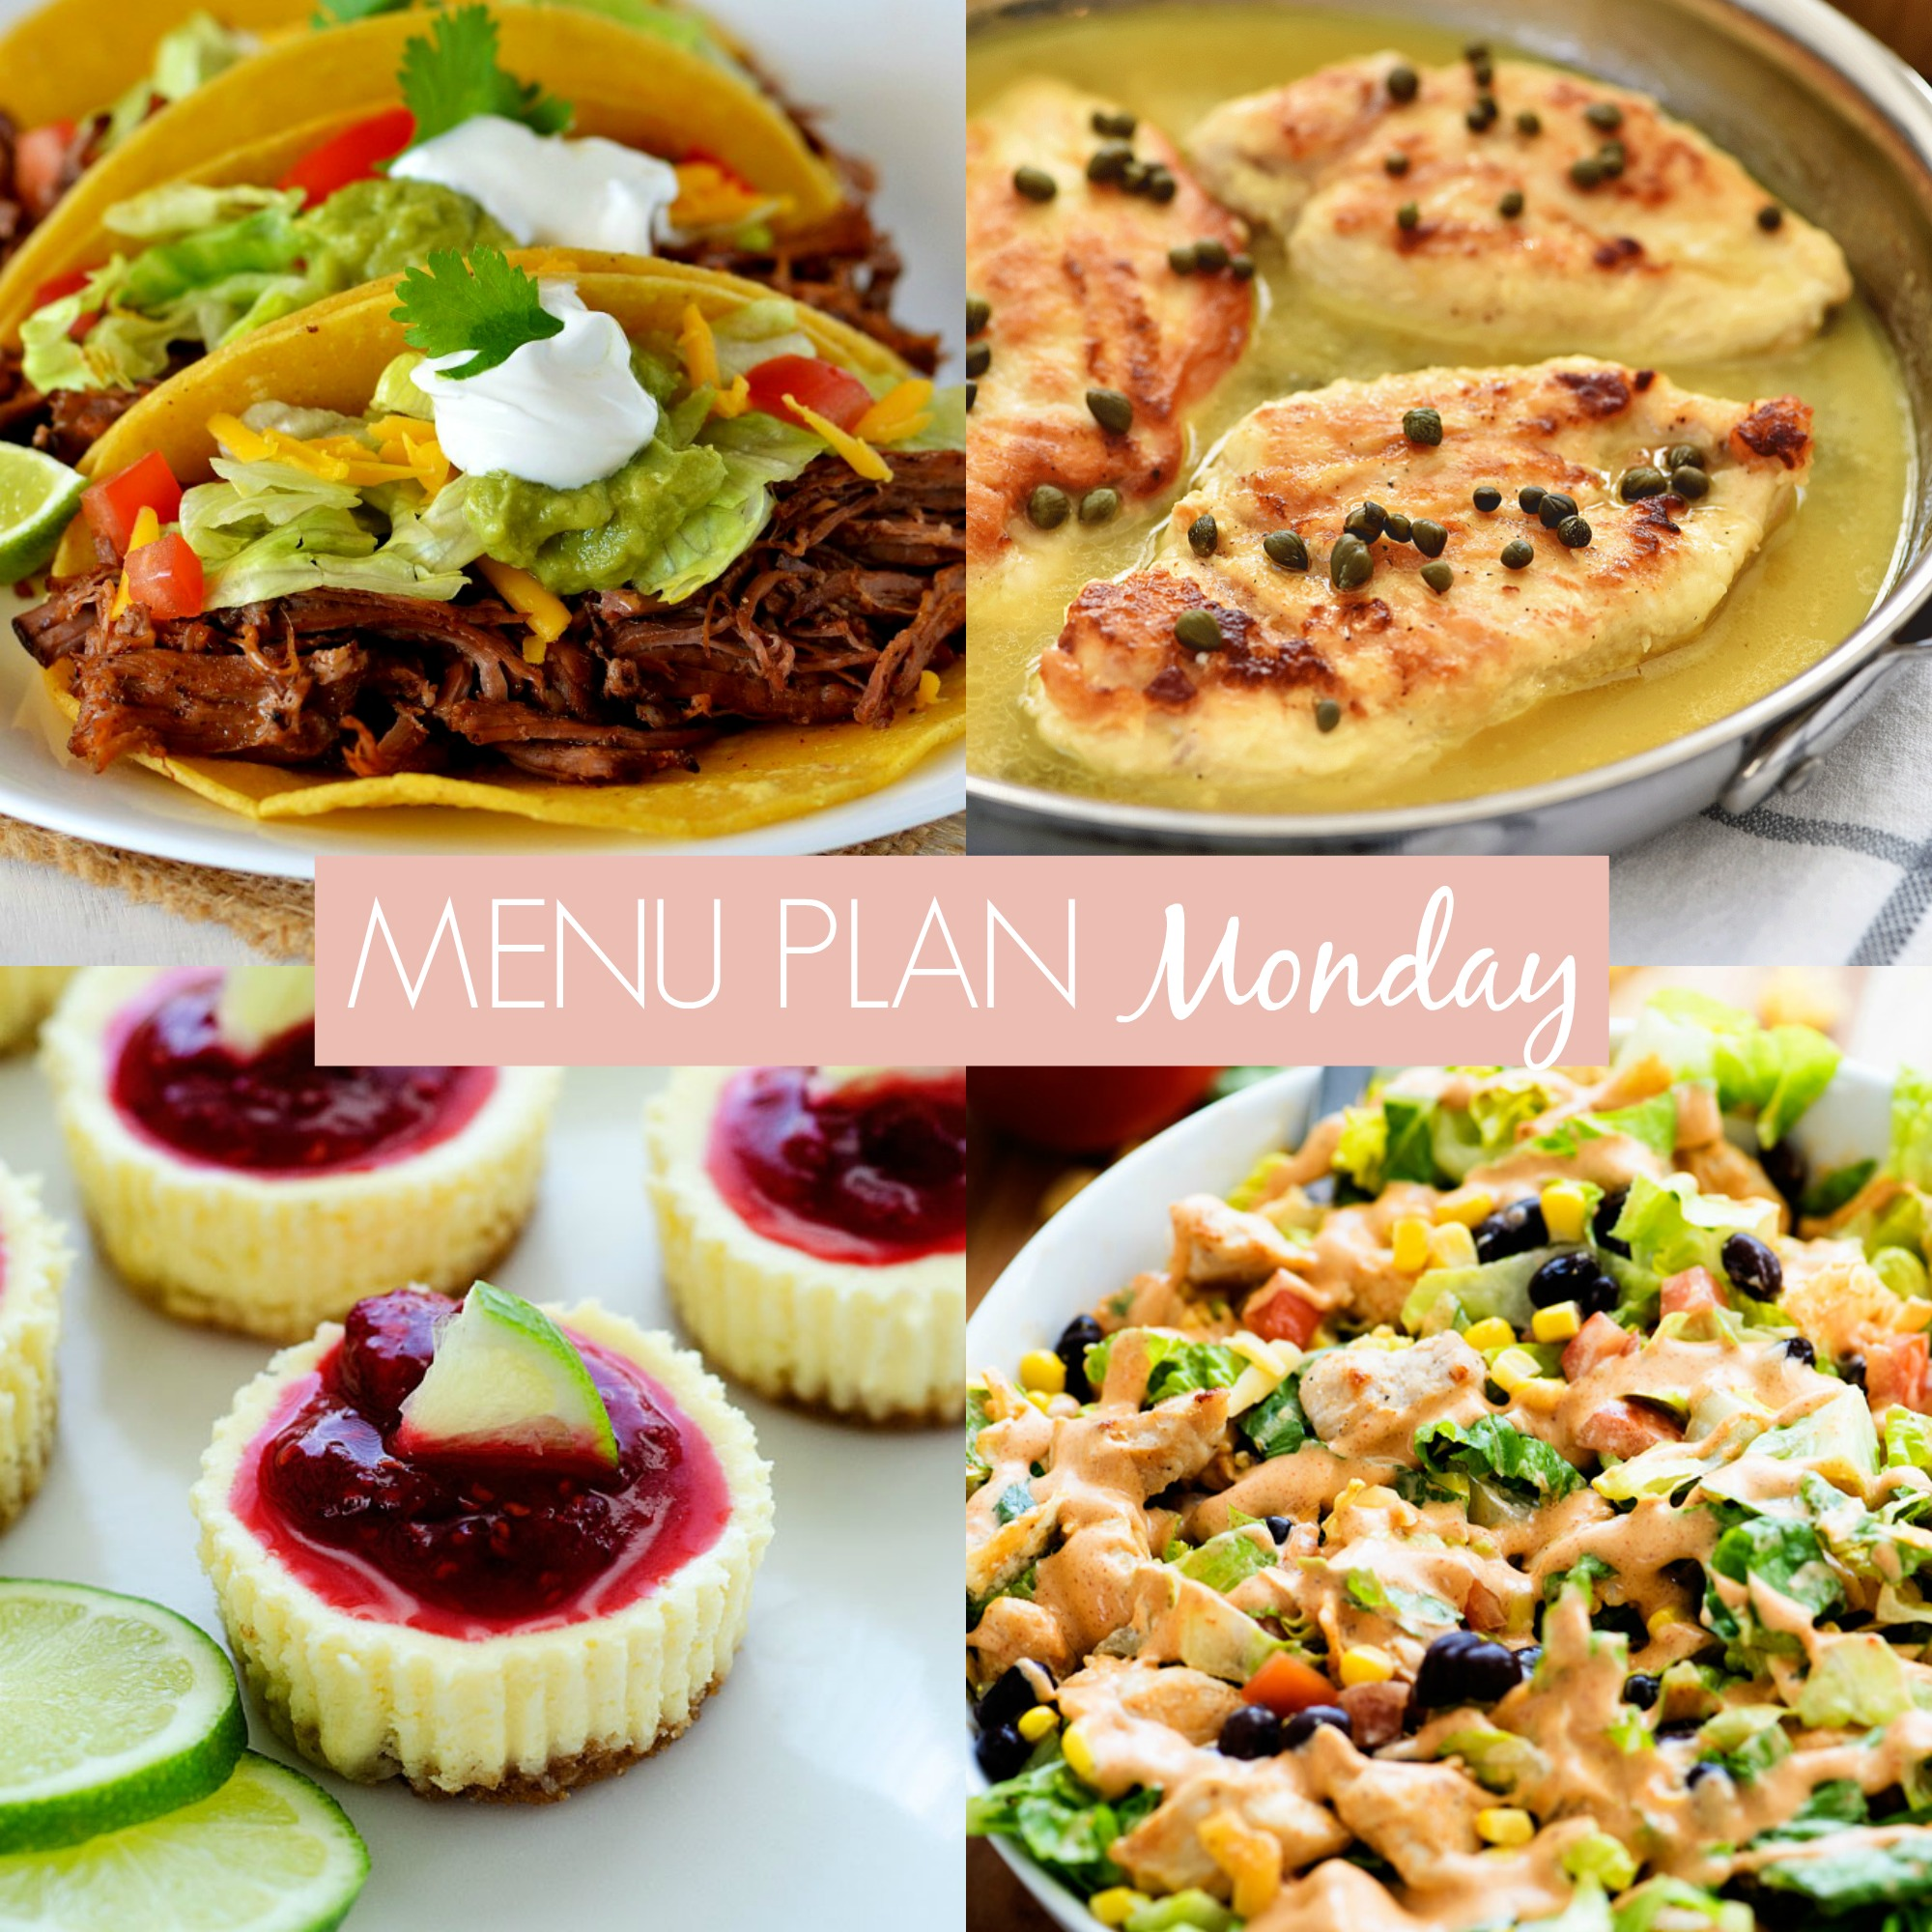 Menu Plan Monday #238